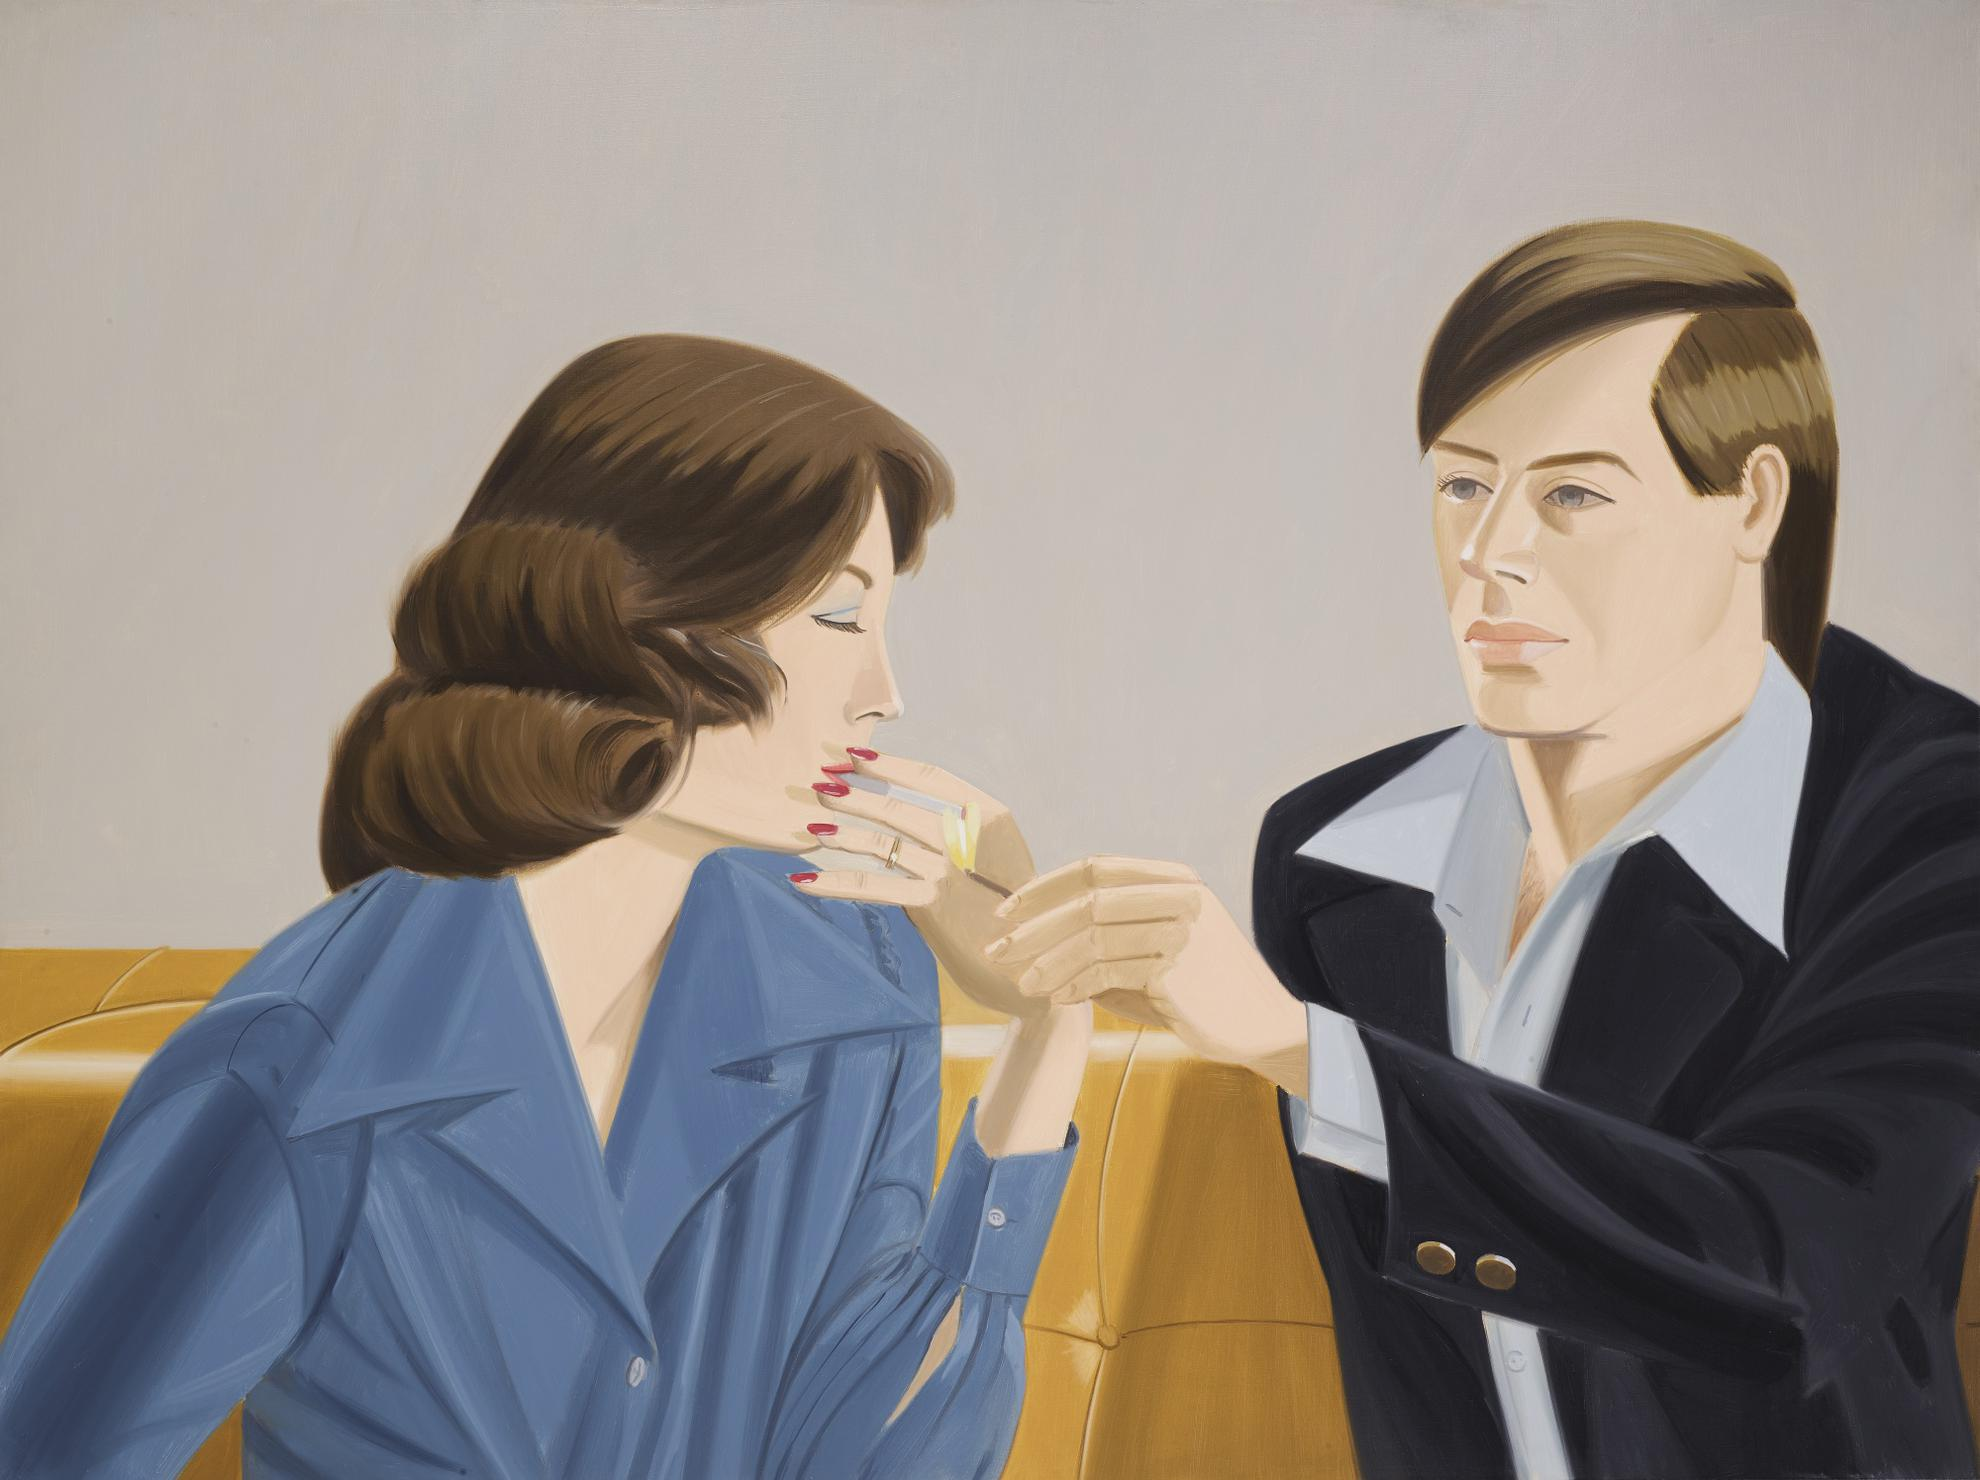 Alex Katz-The Light I-1975